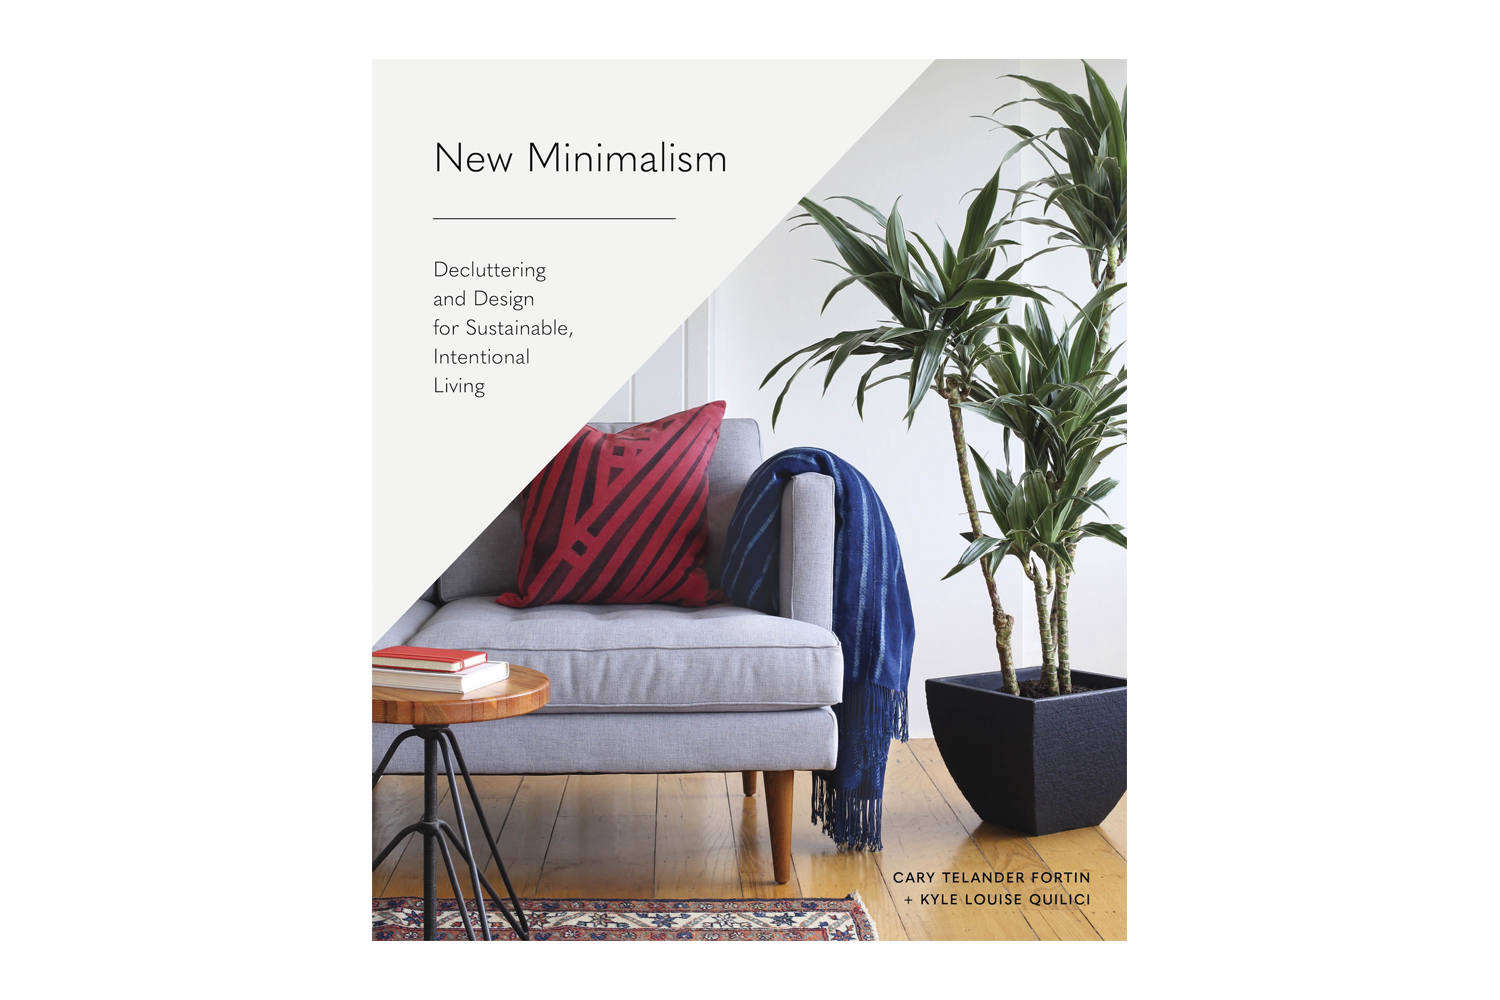 New Minimalism by Cary Fortin and Kyle Quilici